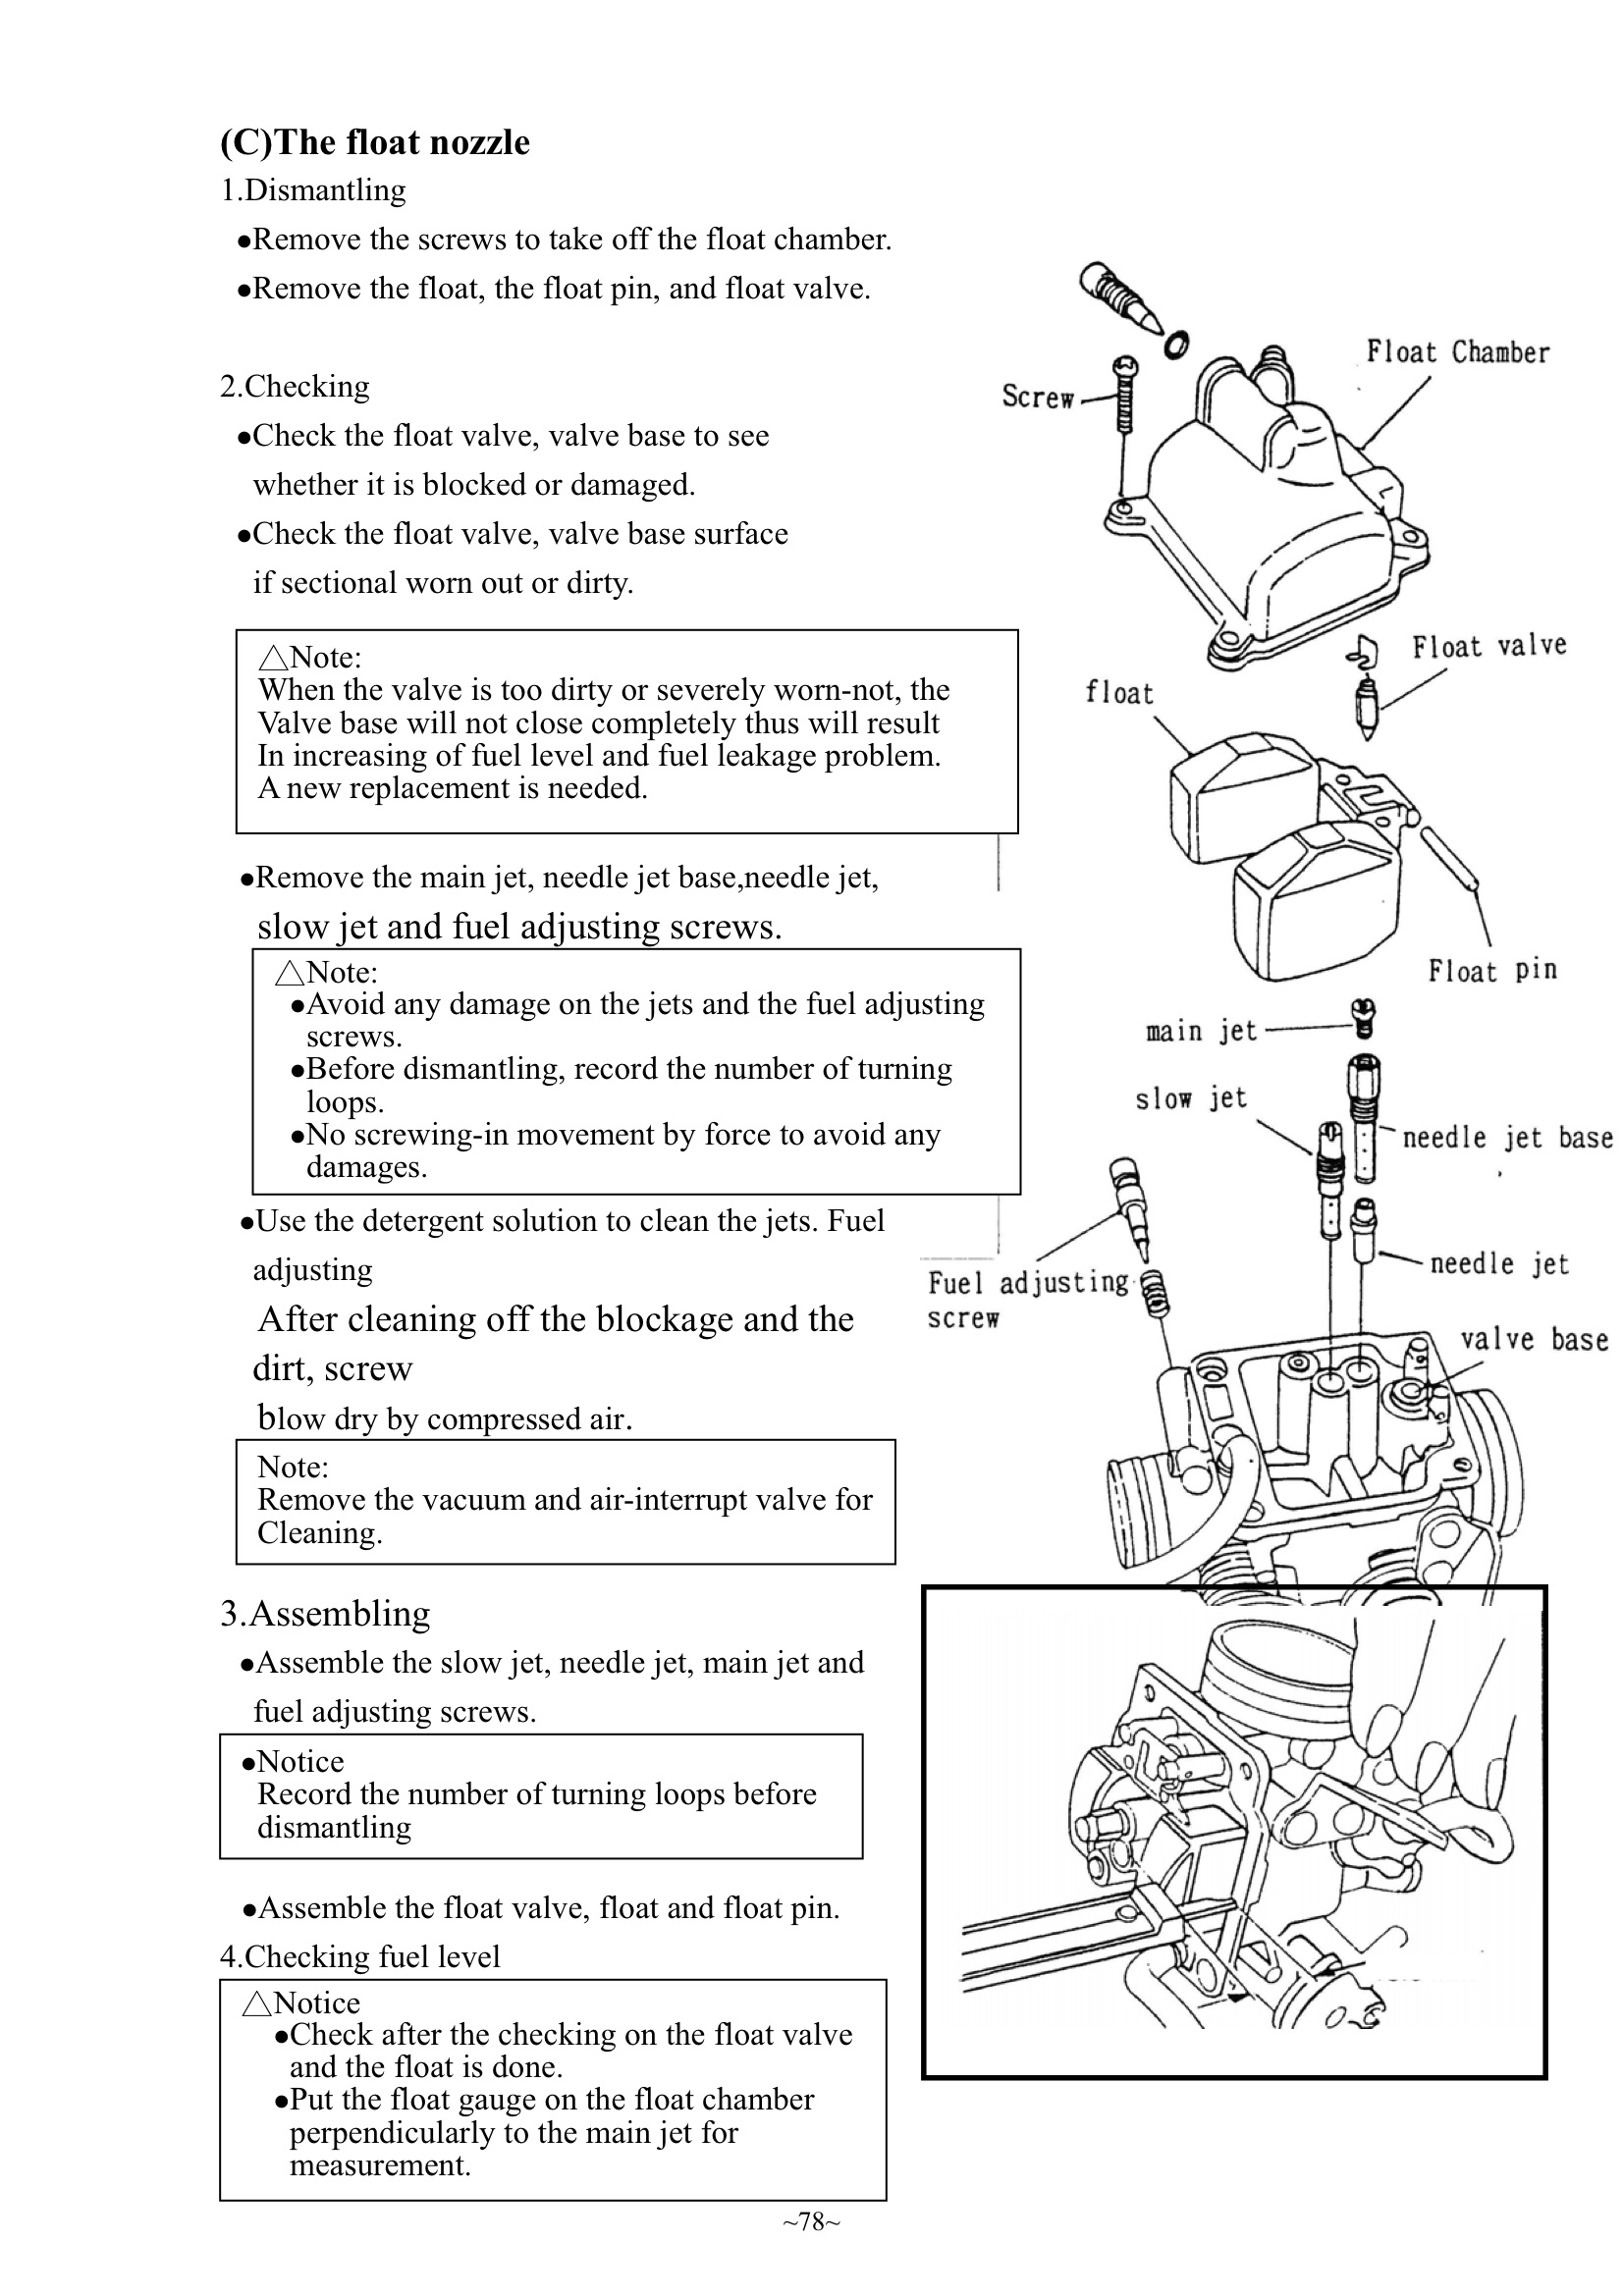 ... JPG, from Service Manual) Buddy 50/125/150 Wiring Diagram (85Kb PDF)